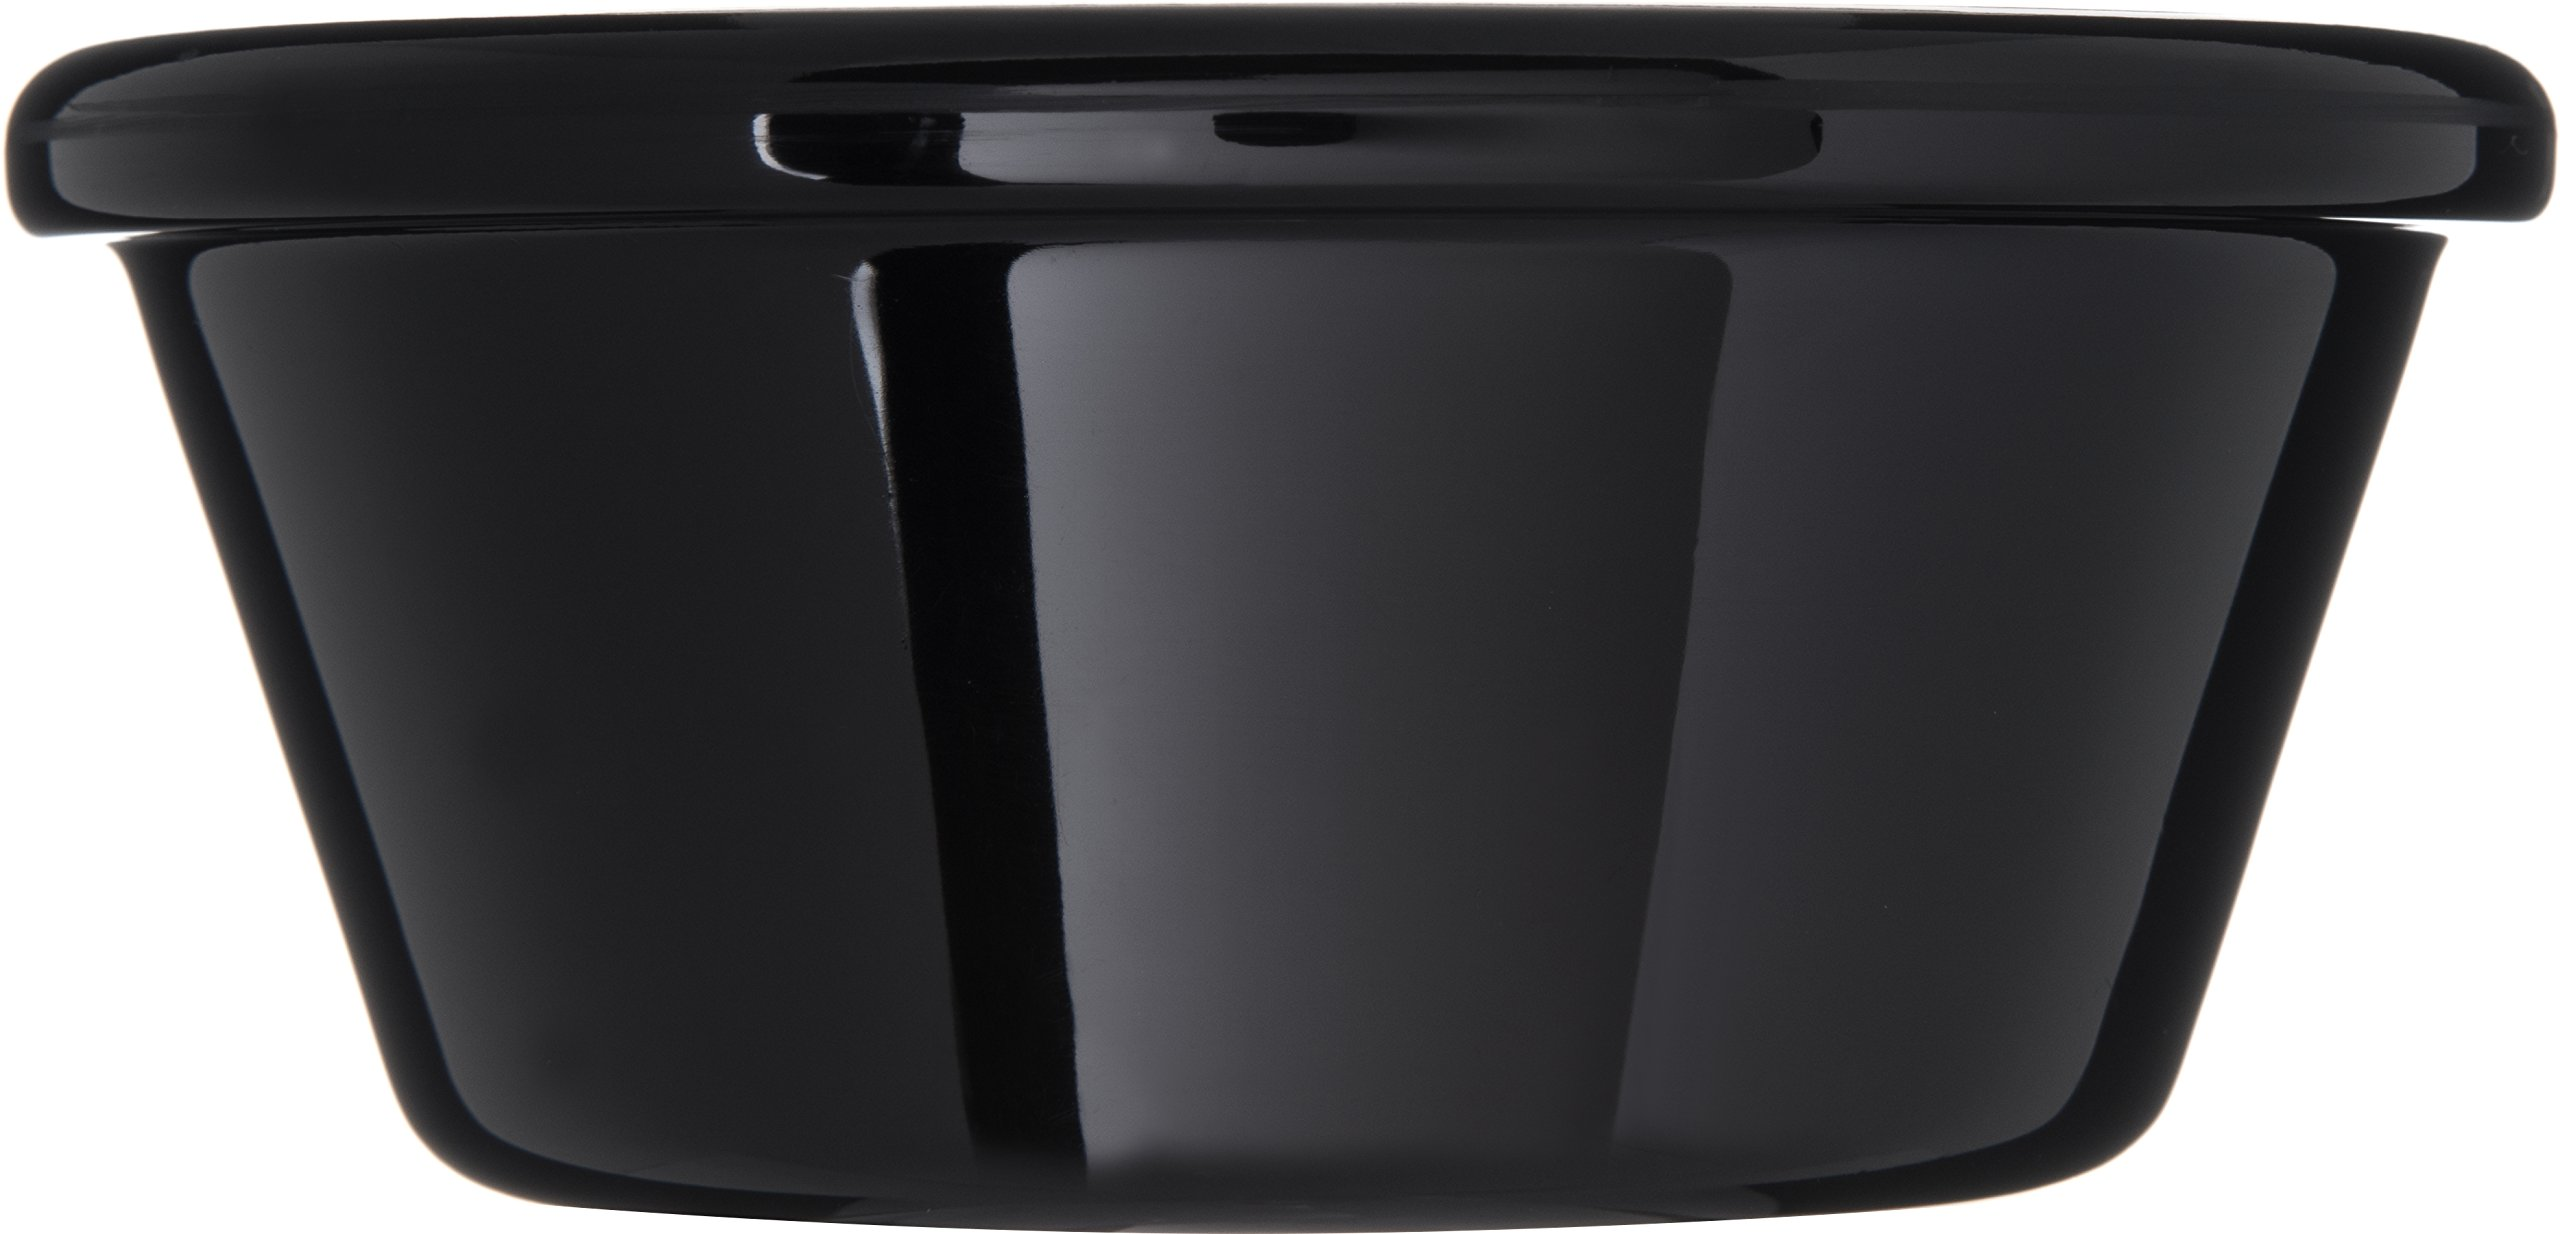 Carlisle 4312603 SAN Smooth Ramekin, 6 oz Capacity, 1.80'' Height, Black (Case of 48) by Carlisle (Image #4)